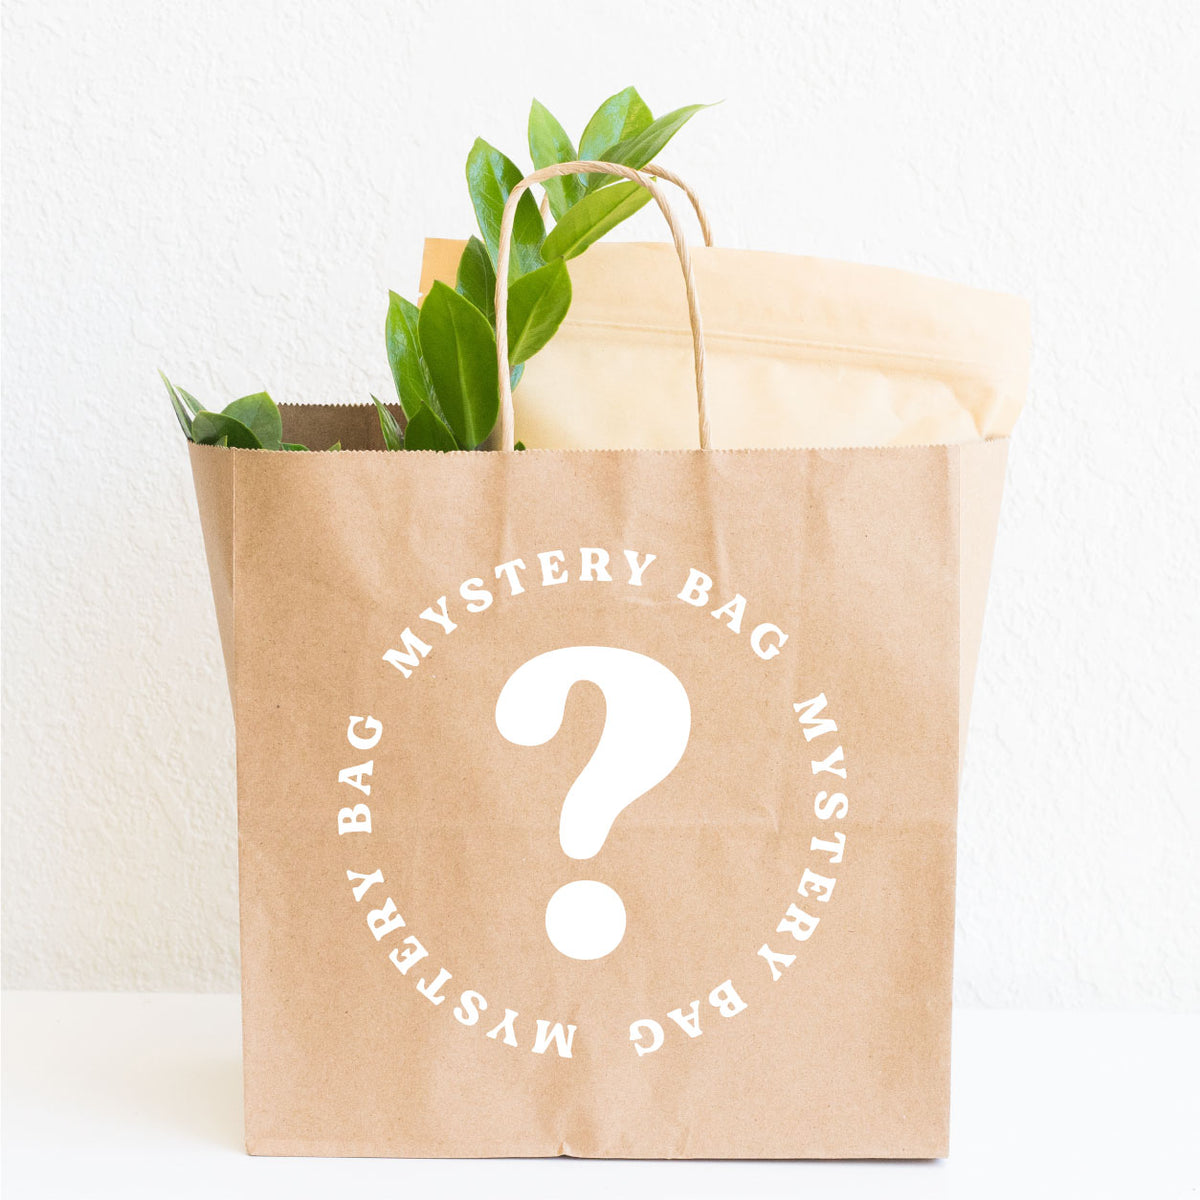 Houseplant Mystery Bag